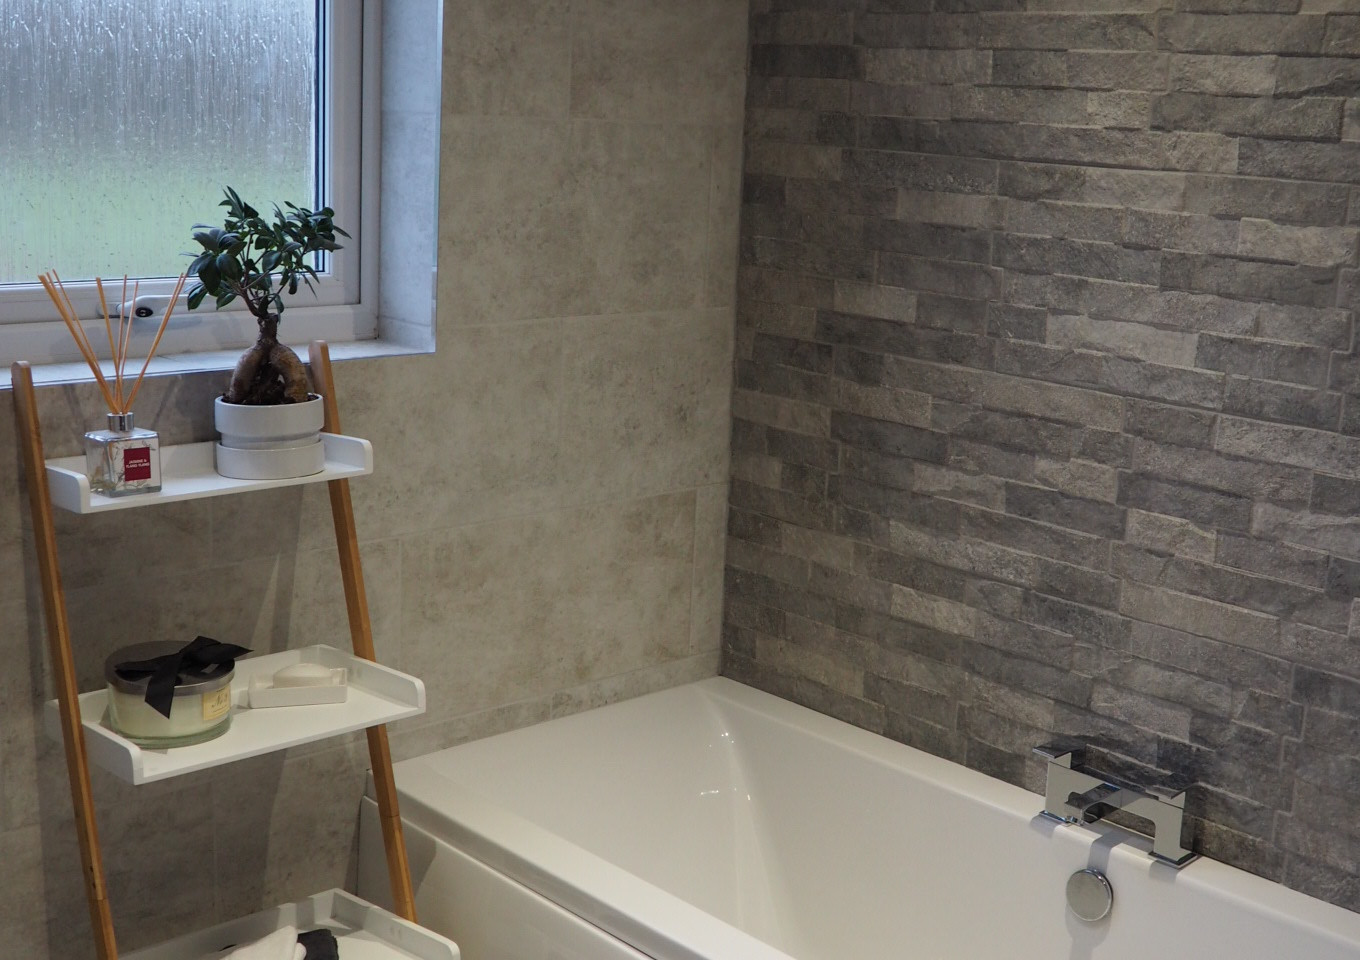 Newport Pagnell Plumber Plumbing services bathroom